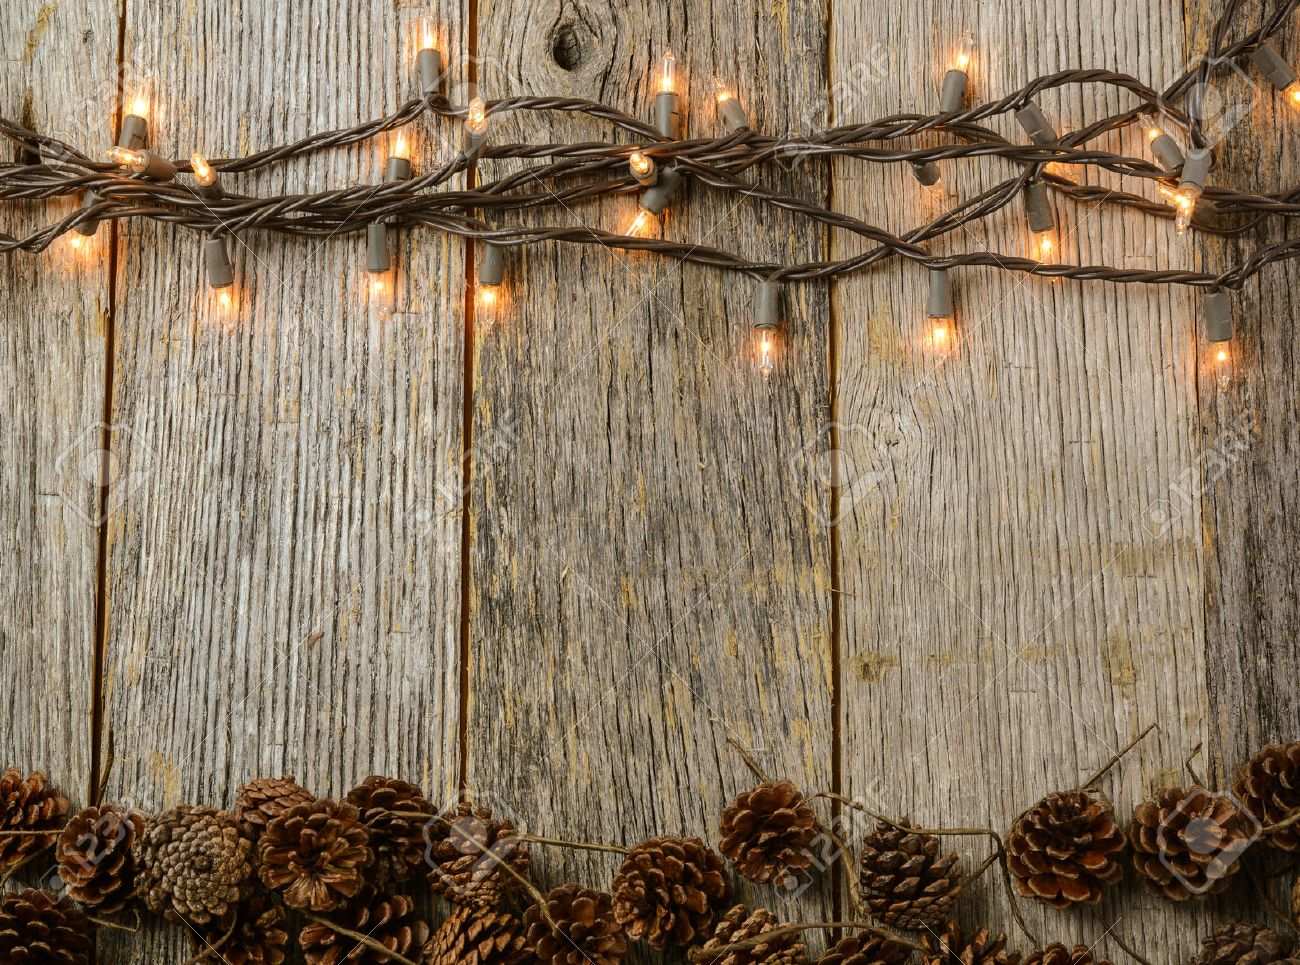 Christmas Lights And Pine Cones On Rustic Wood Background Stock ...